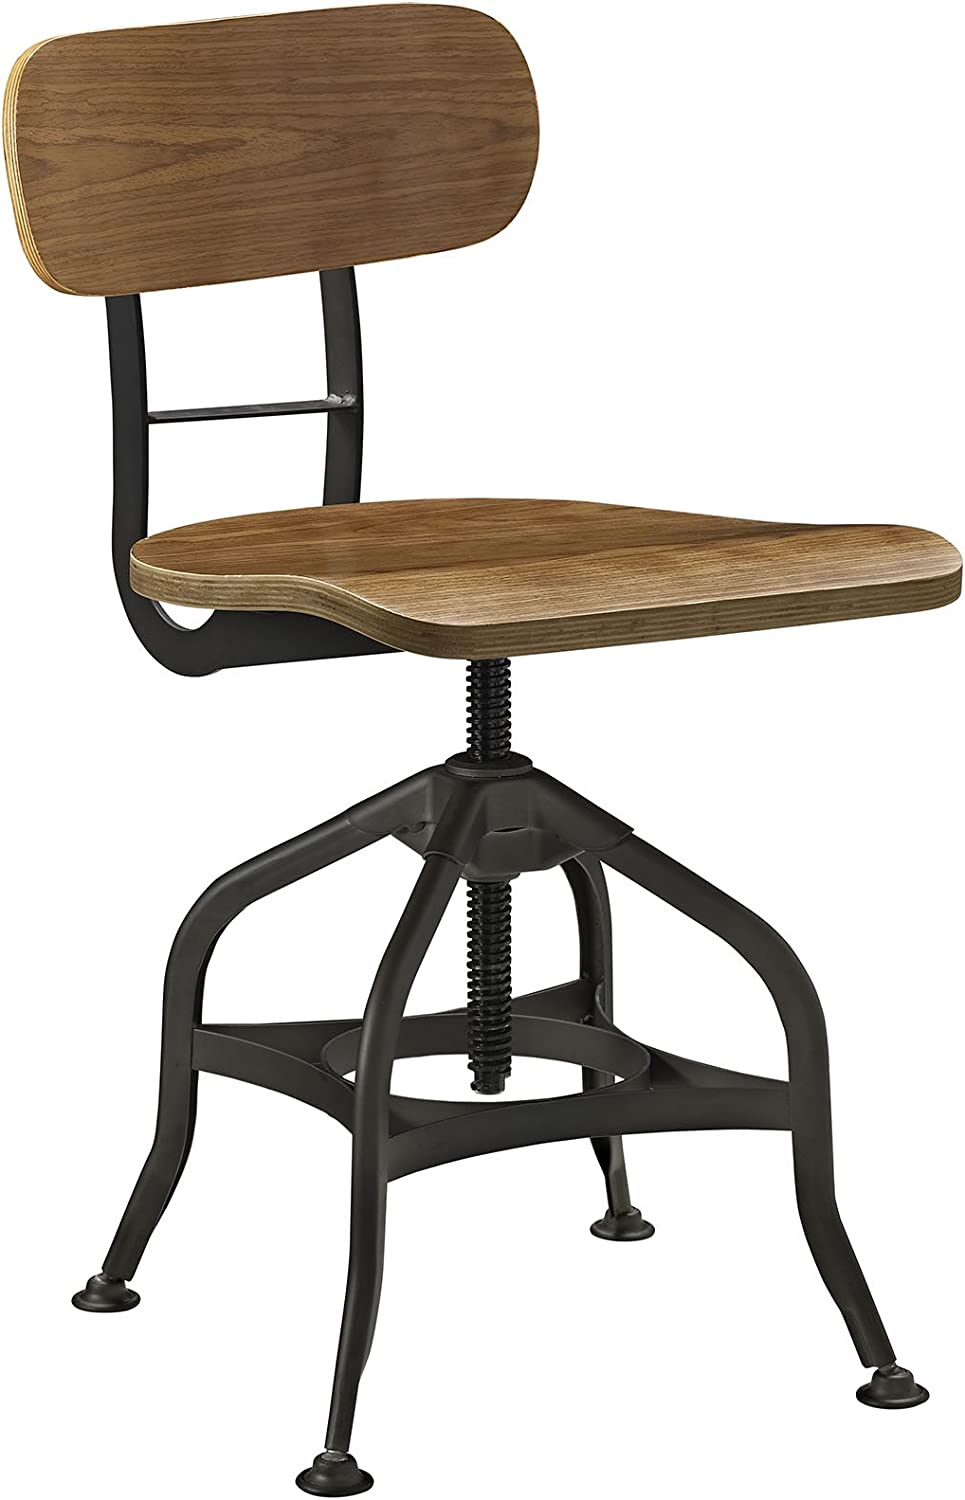 Modway Mark Wood Bar Stool in Brown